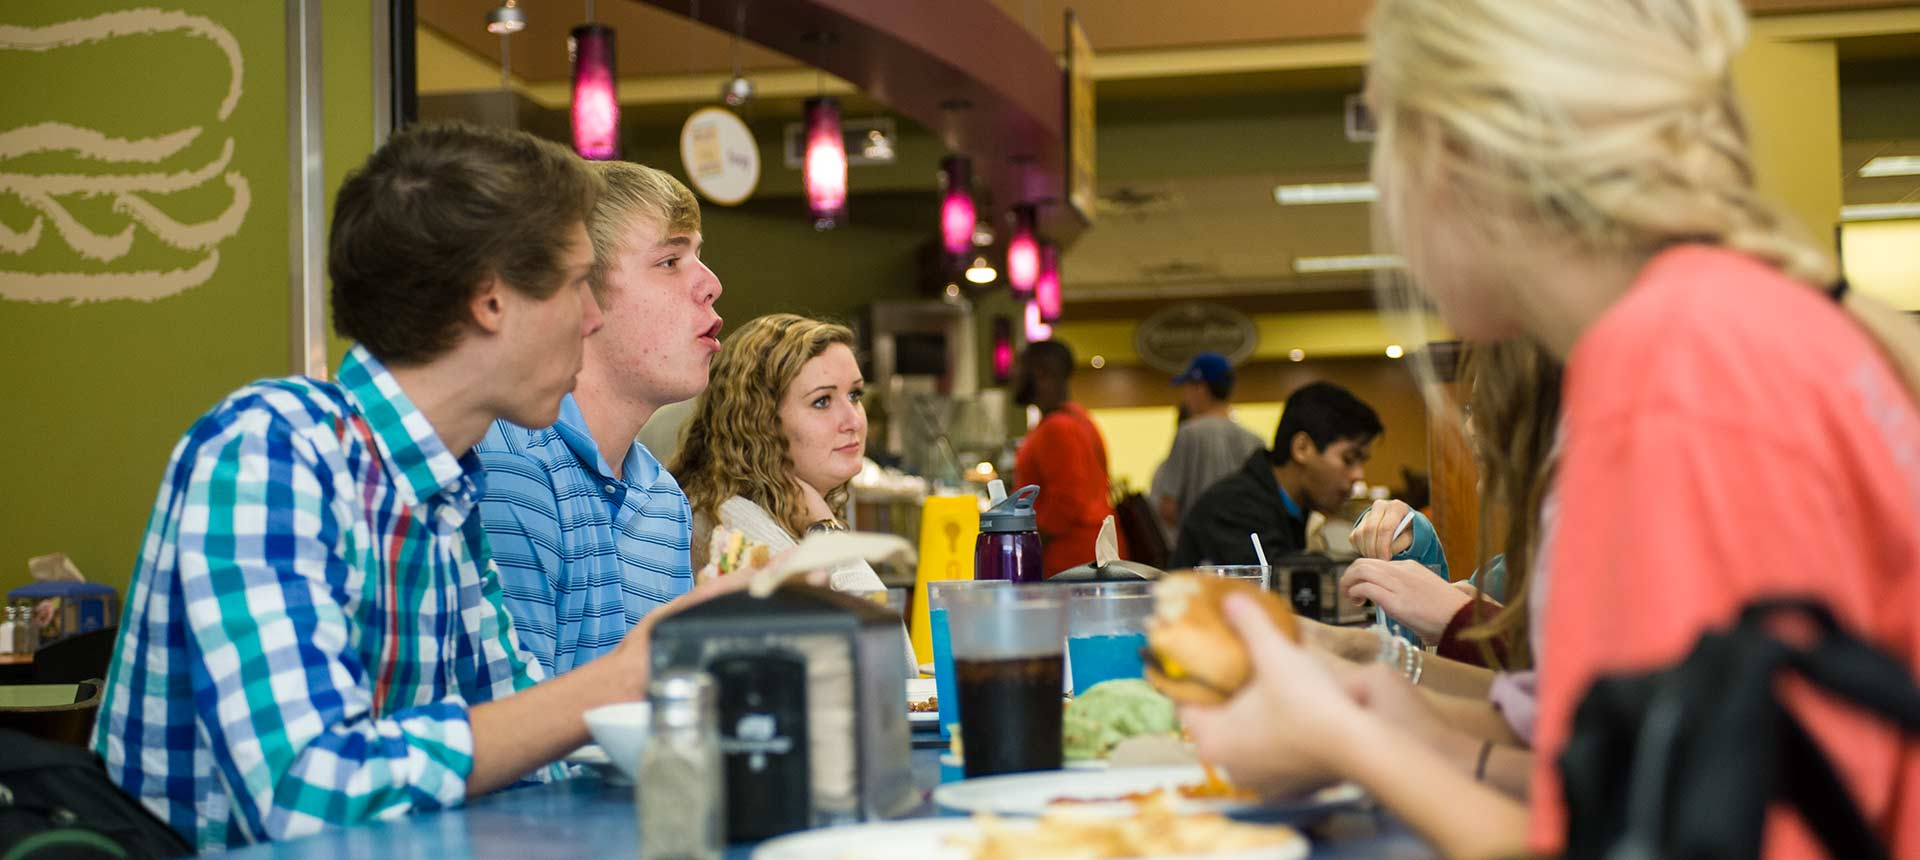 Georgia College Cafeteria